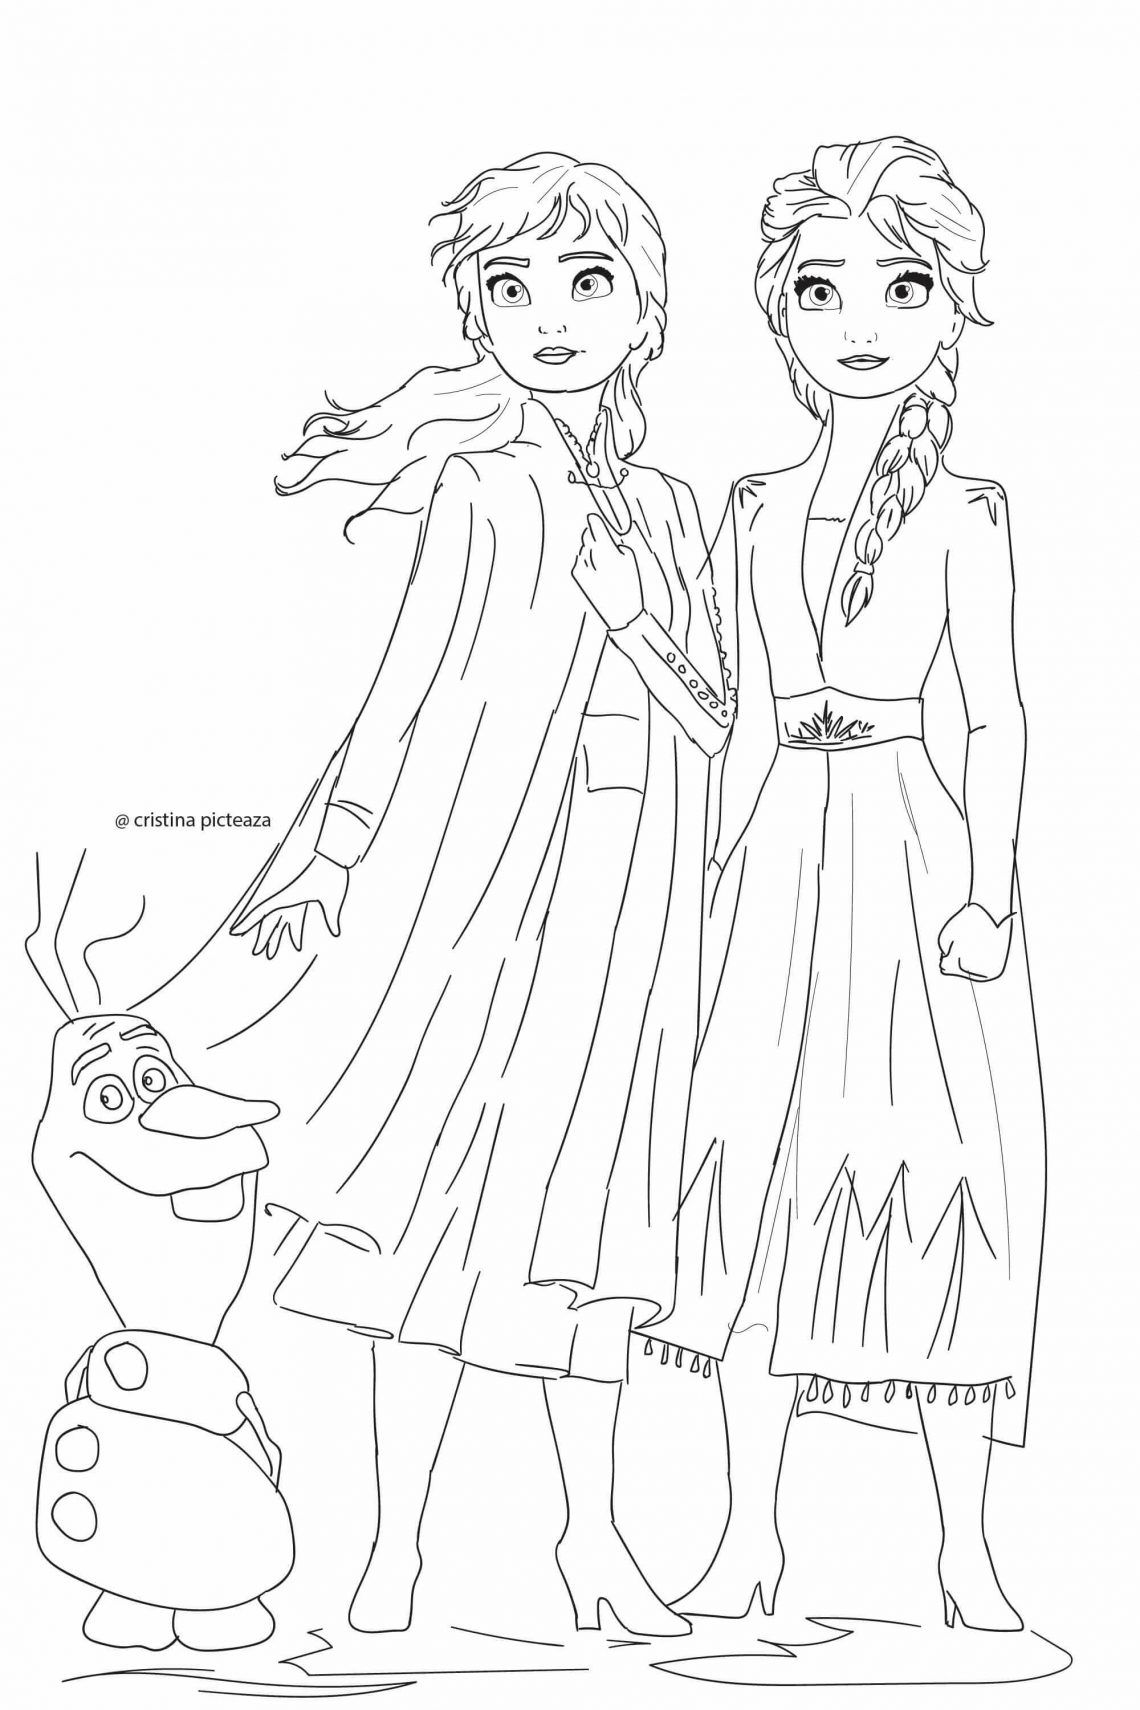 Frozen 2 Coloring Pages Elsa And Anna Coloring Disney Princess Coloring Pages Frozen Coloring Pages Elsa Coloring Pages